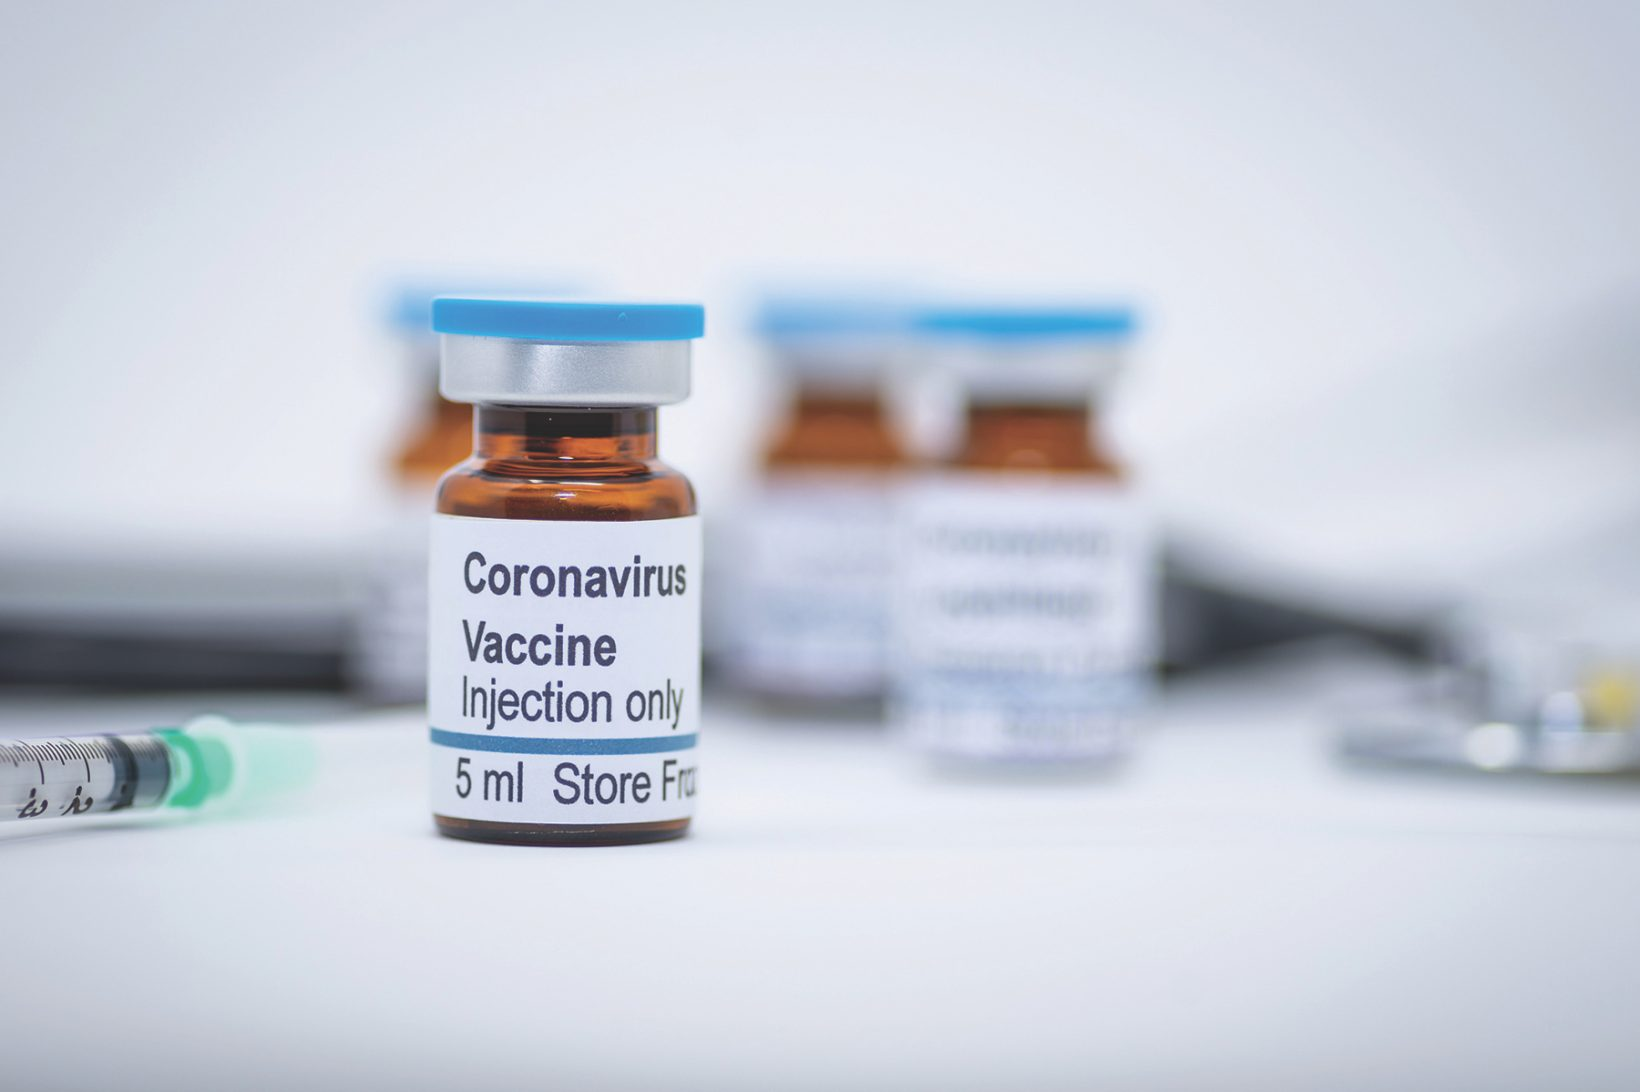 britain-begins-testing-vaccines-from-the-new-coronavirus-in-humans